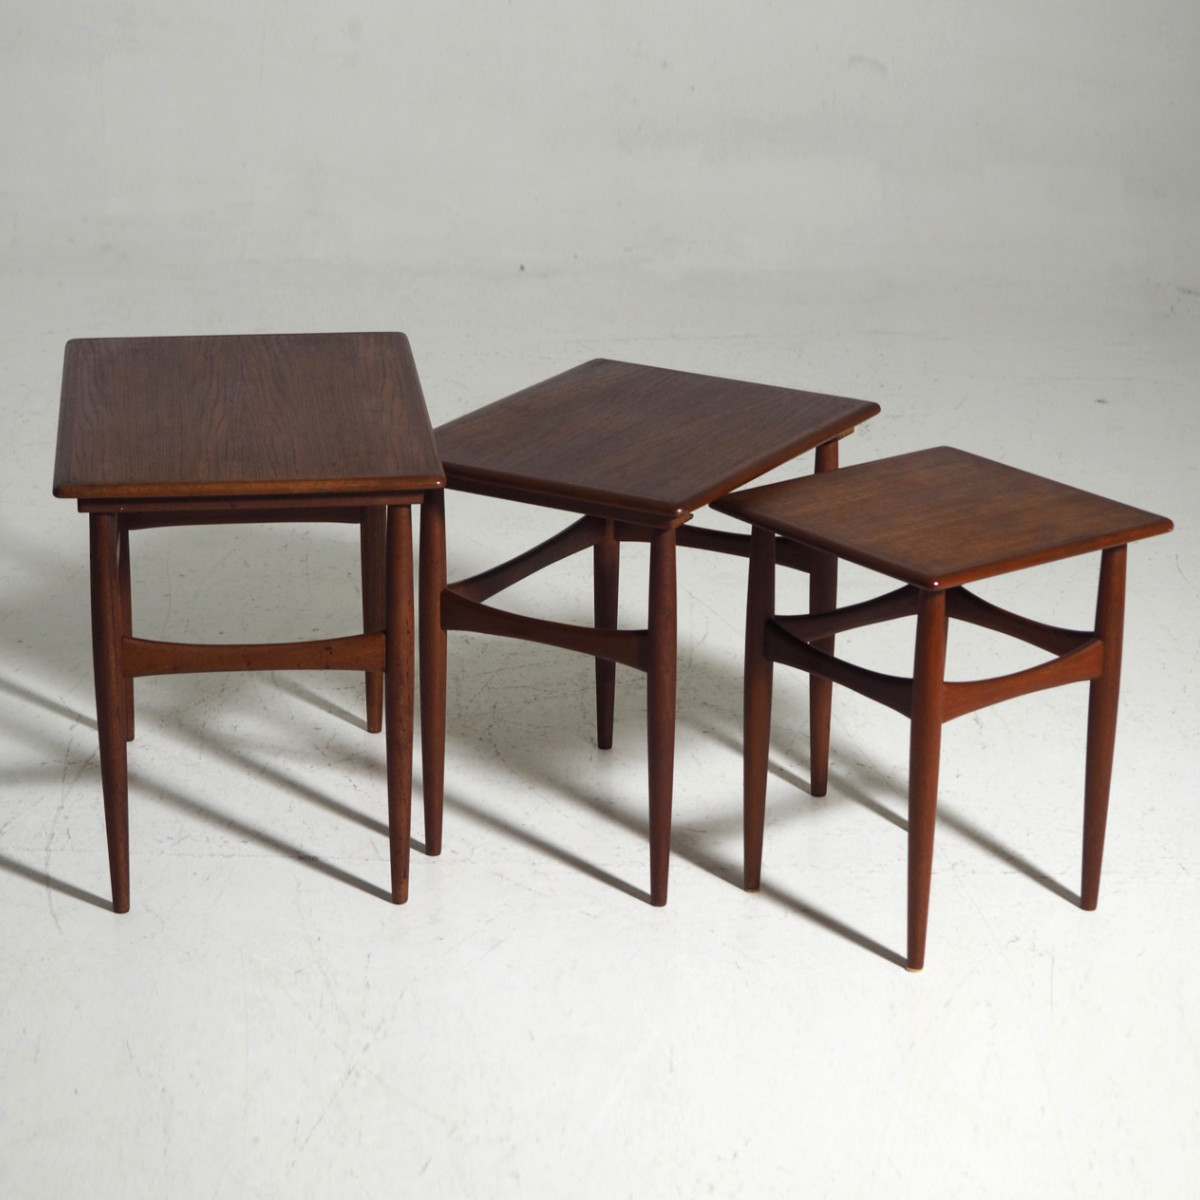 13235-1D  Nest of tables in teak, Danish architect, circa 1960..jpg